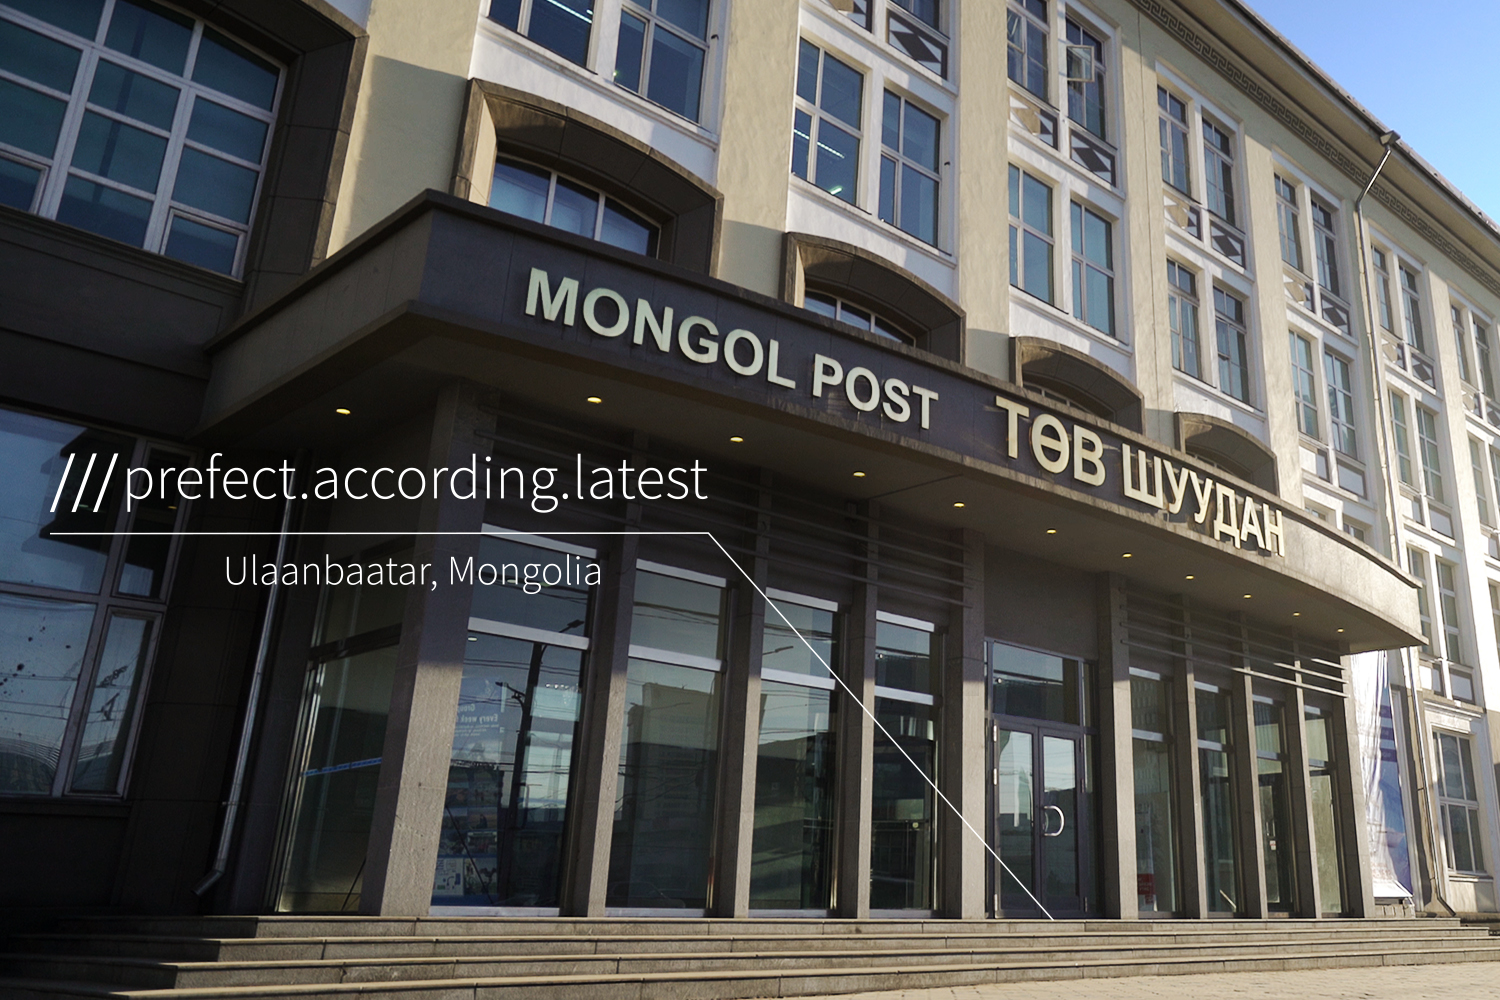 Mongol Post office at 3 word address perfect.according.latest